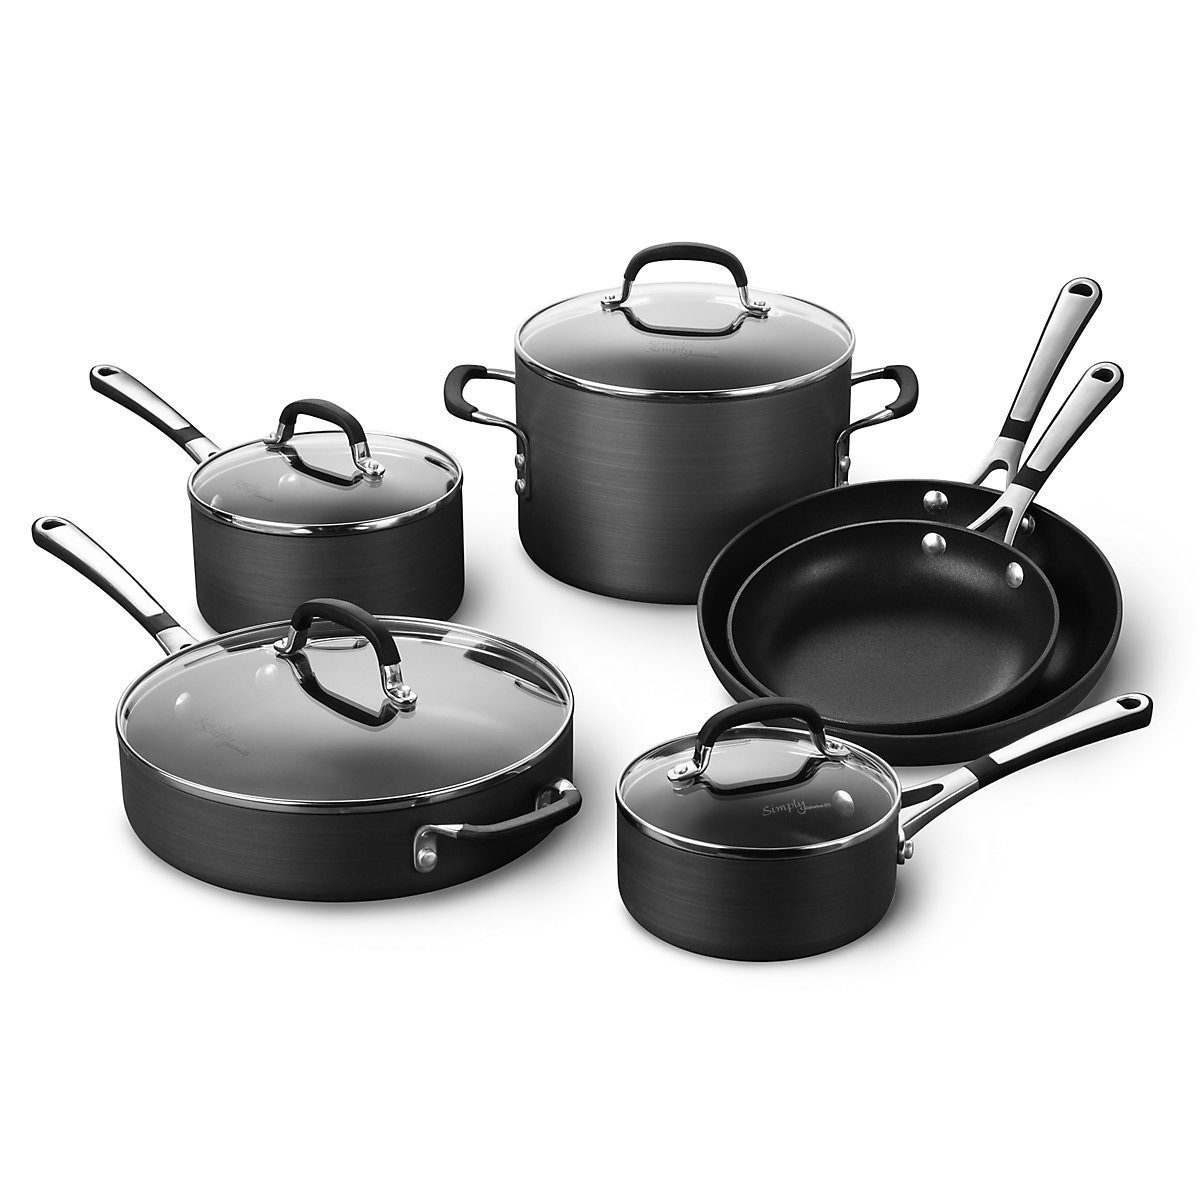 Top 10 Calphalon Cookware Reviews -Best Units for You (2019)